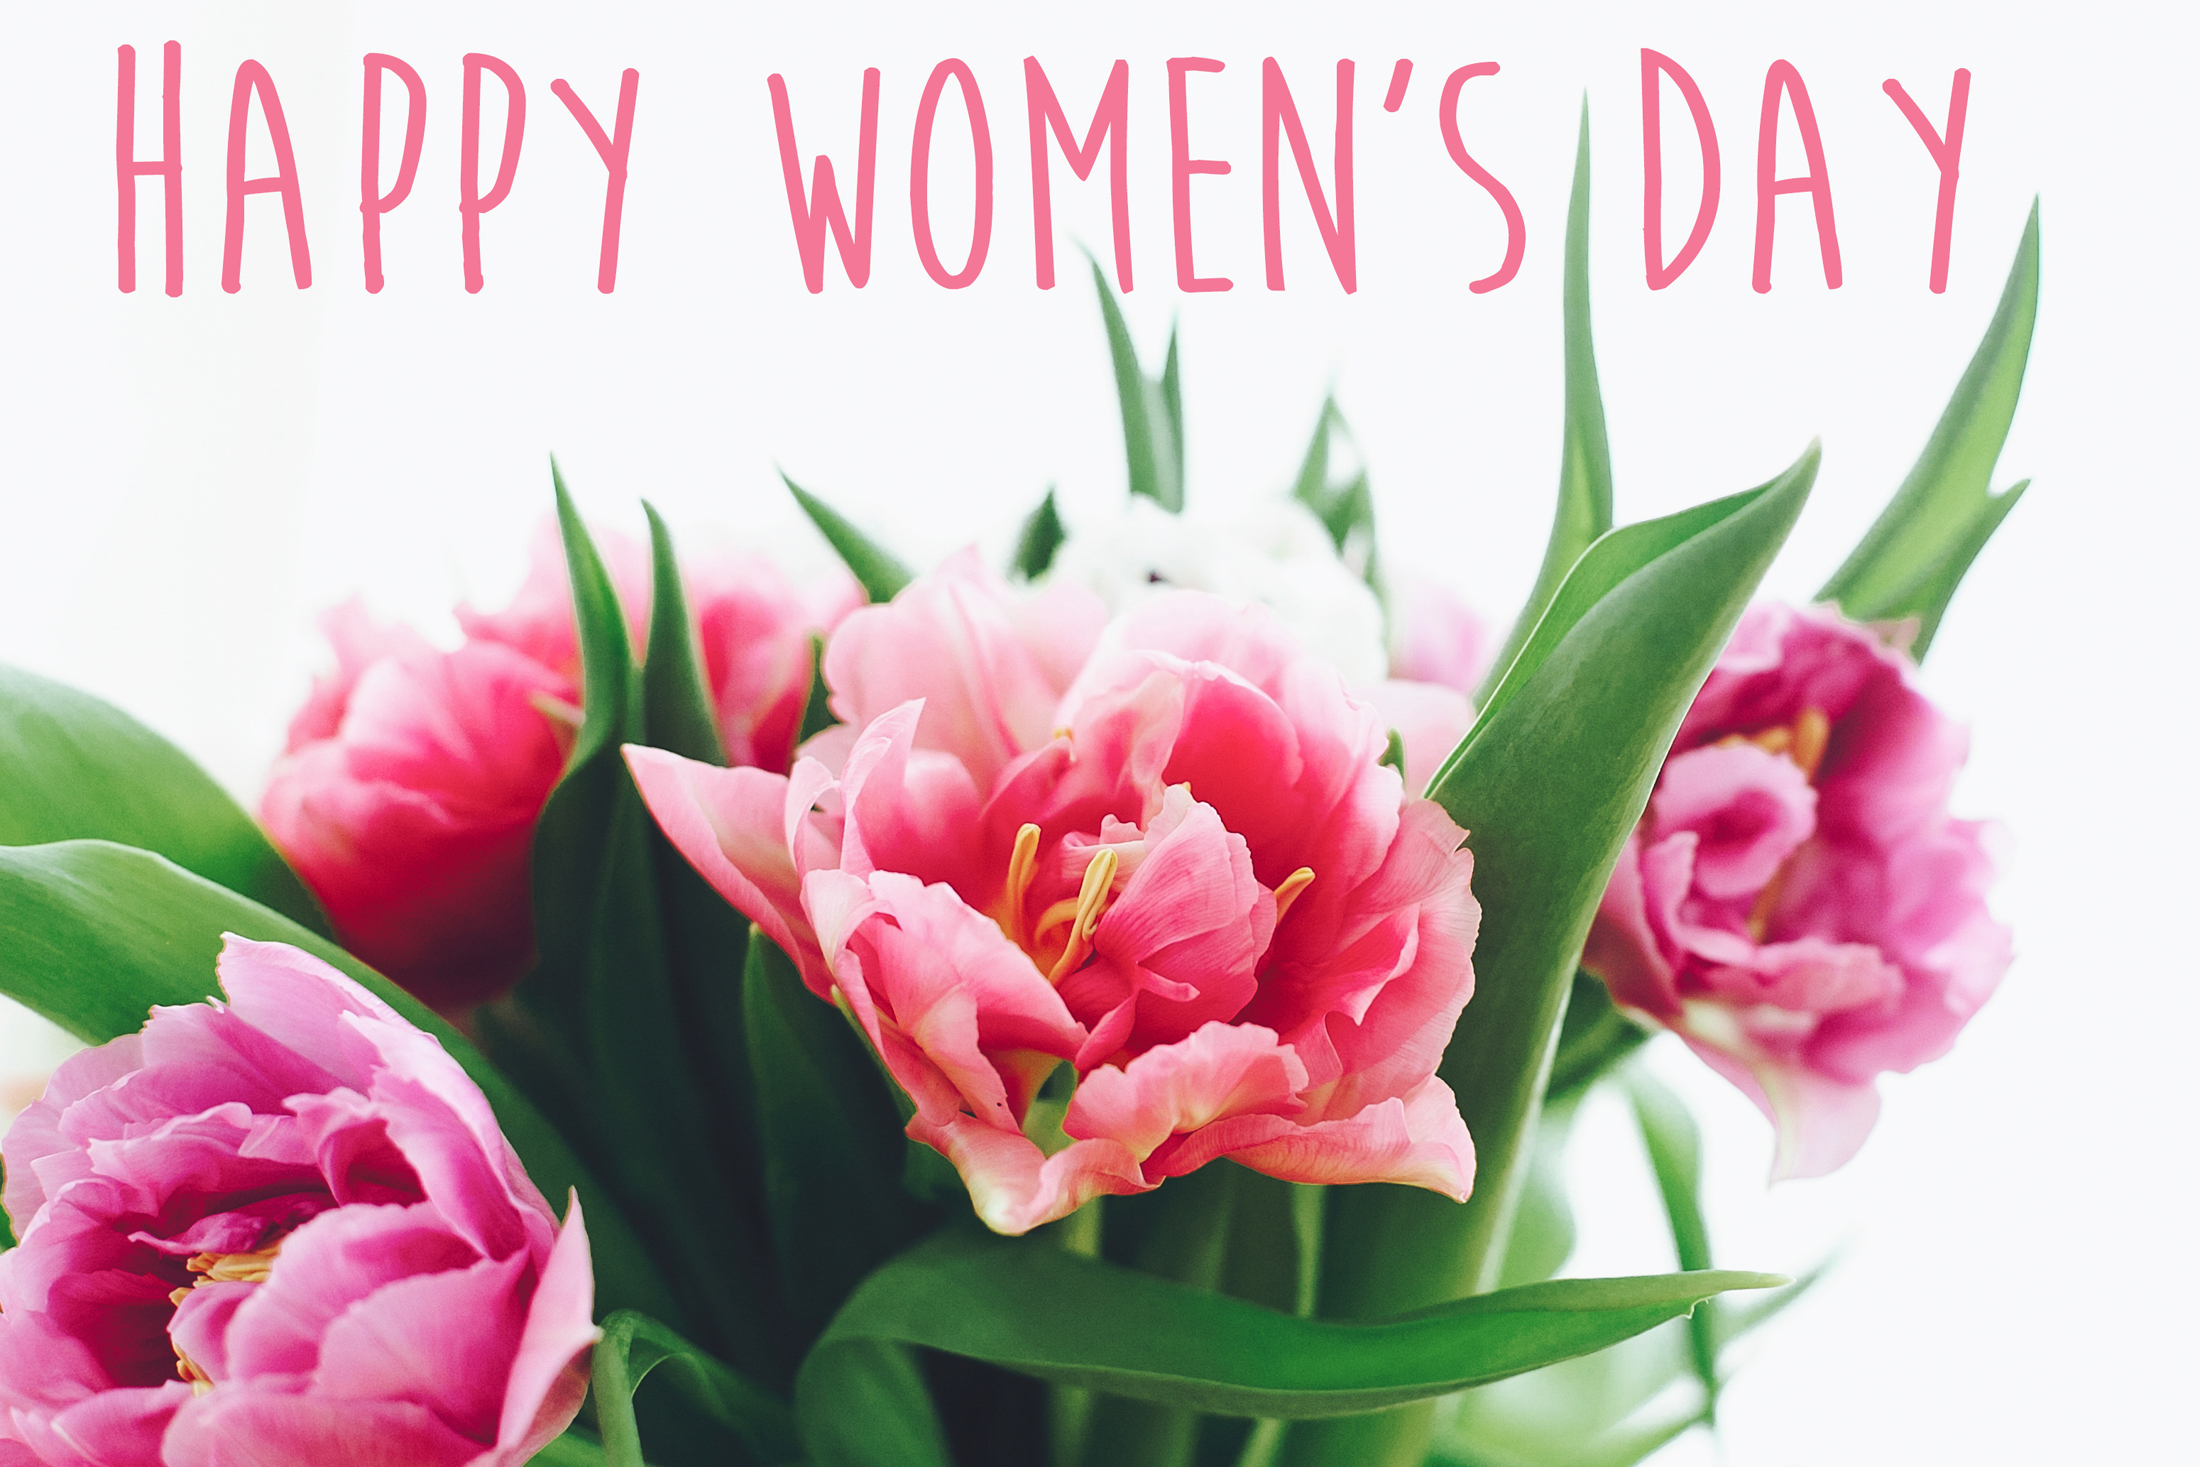 CA Flower Mall Proudly Celebrates Women's Day 2019 With